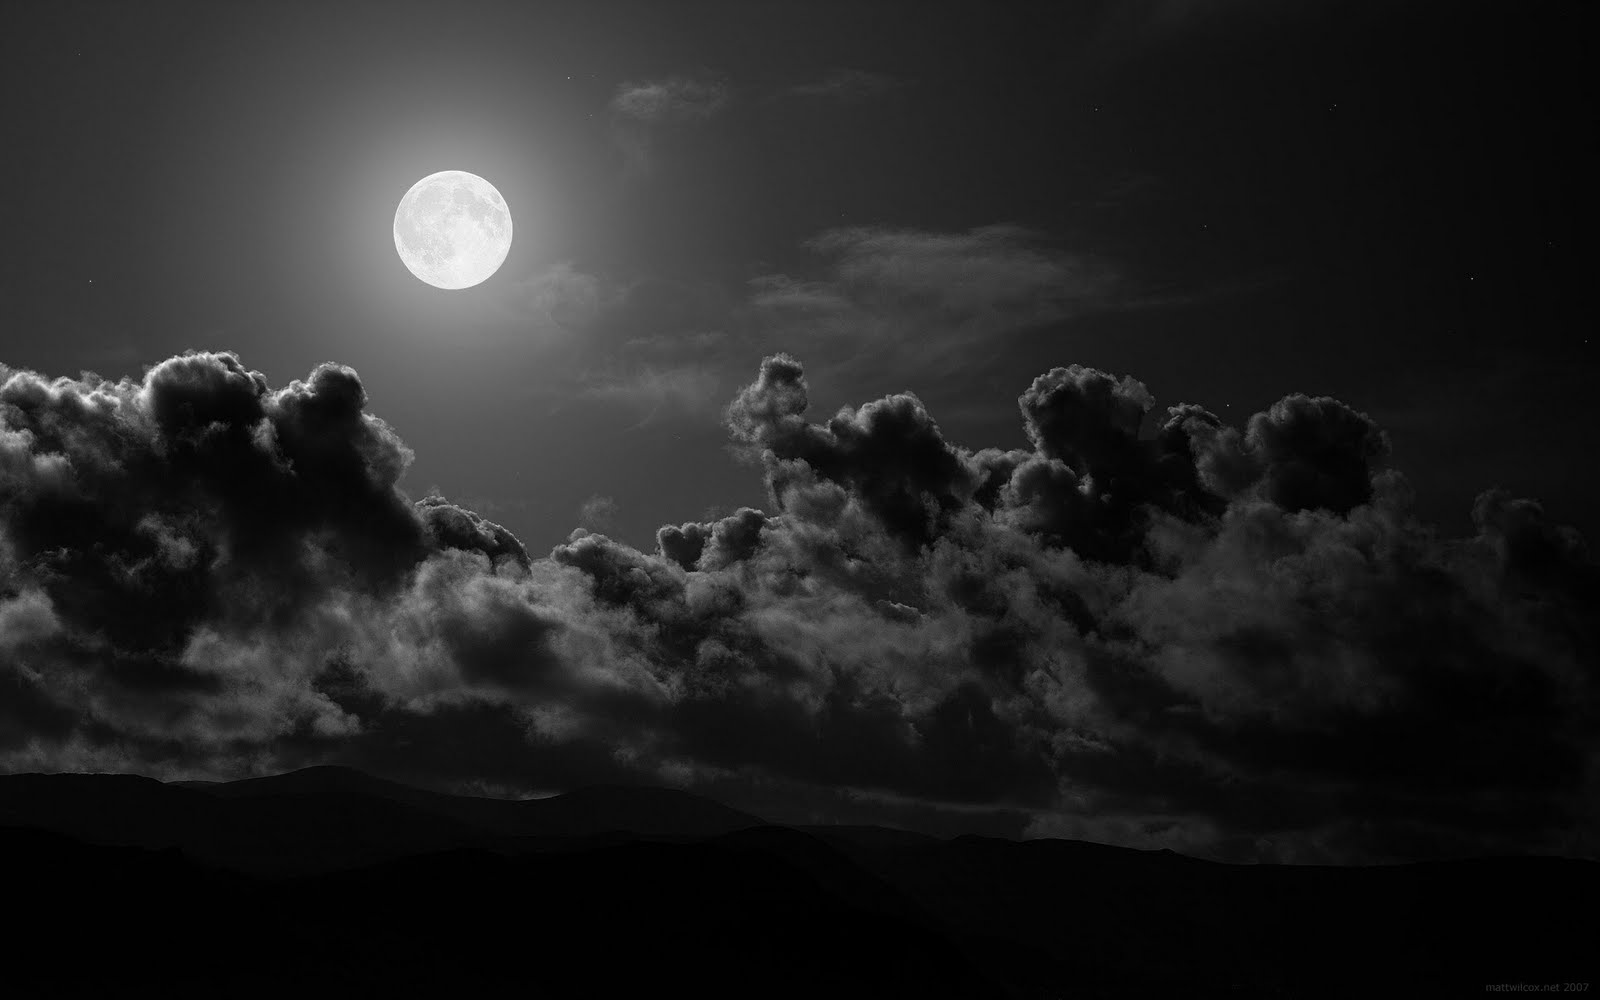 http://1.bp.blogspot.com/-8_93ScZBJ5I/Tbz6UT2PRzI/AAAAAAAAADw/i2pnJus6vNw/s1600/Moon-Light-Black-Wallpaper.jpg